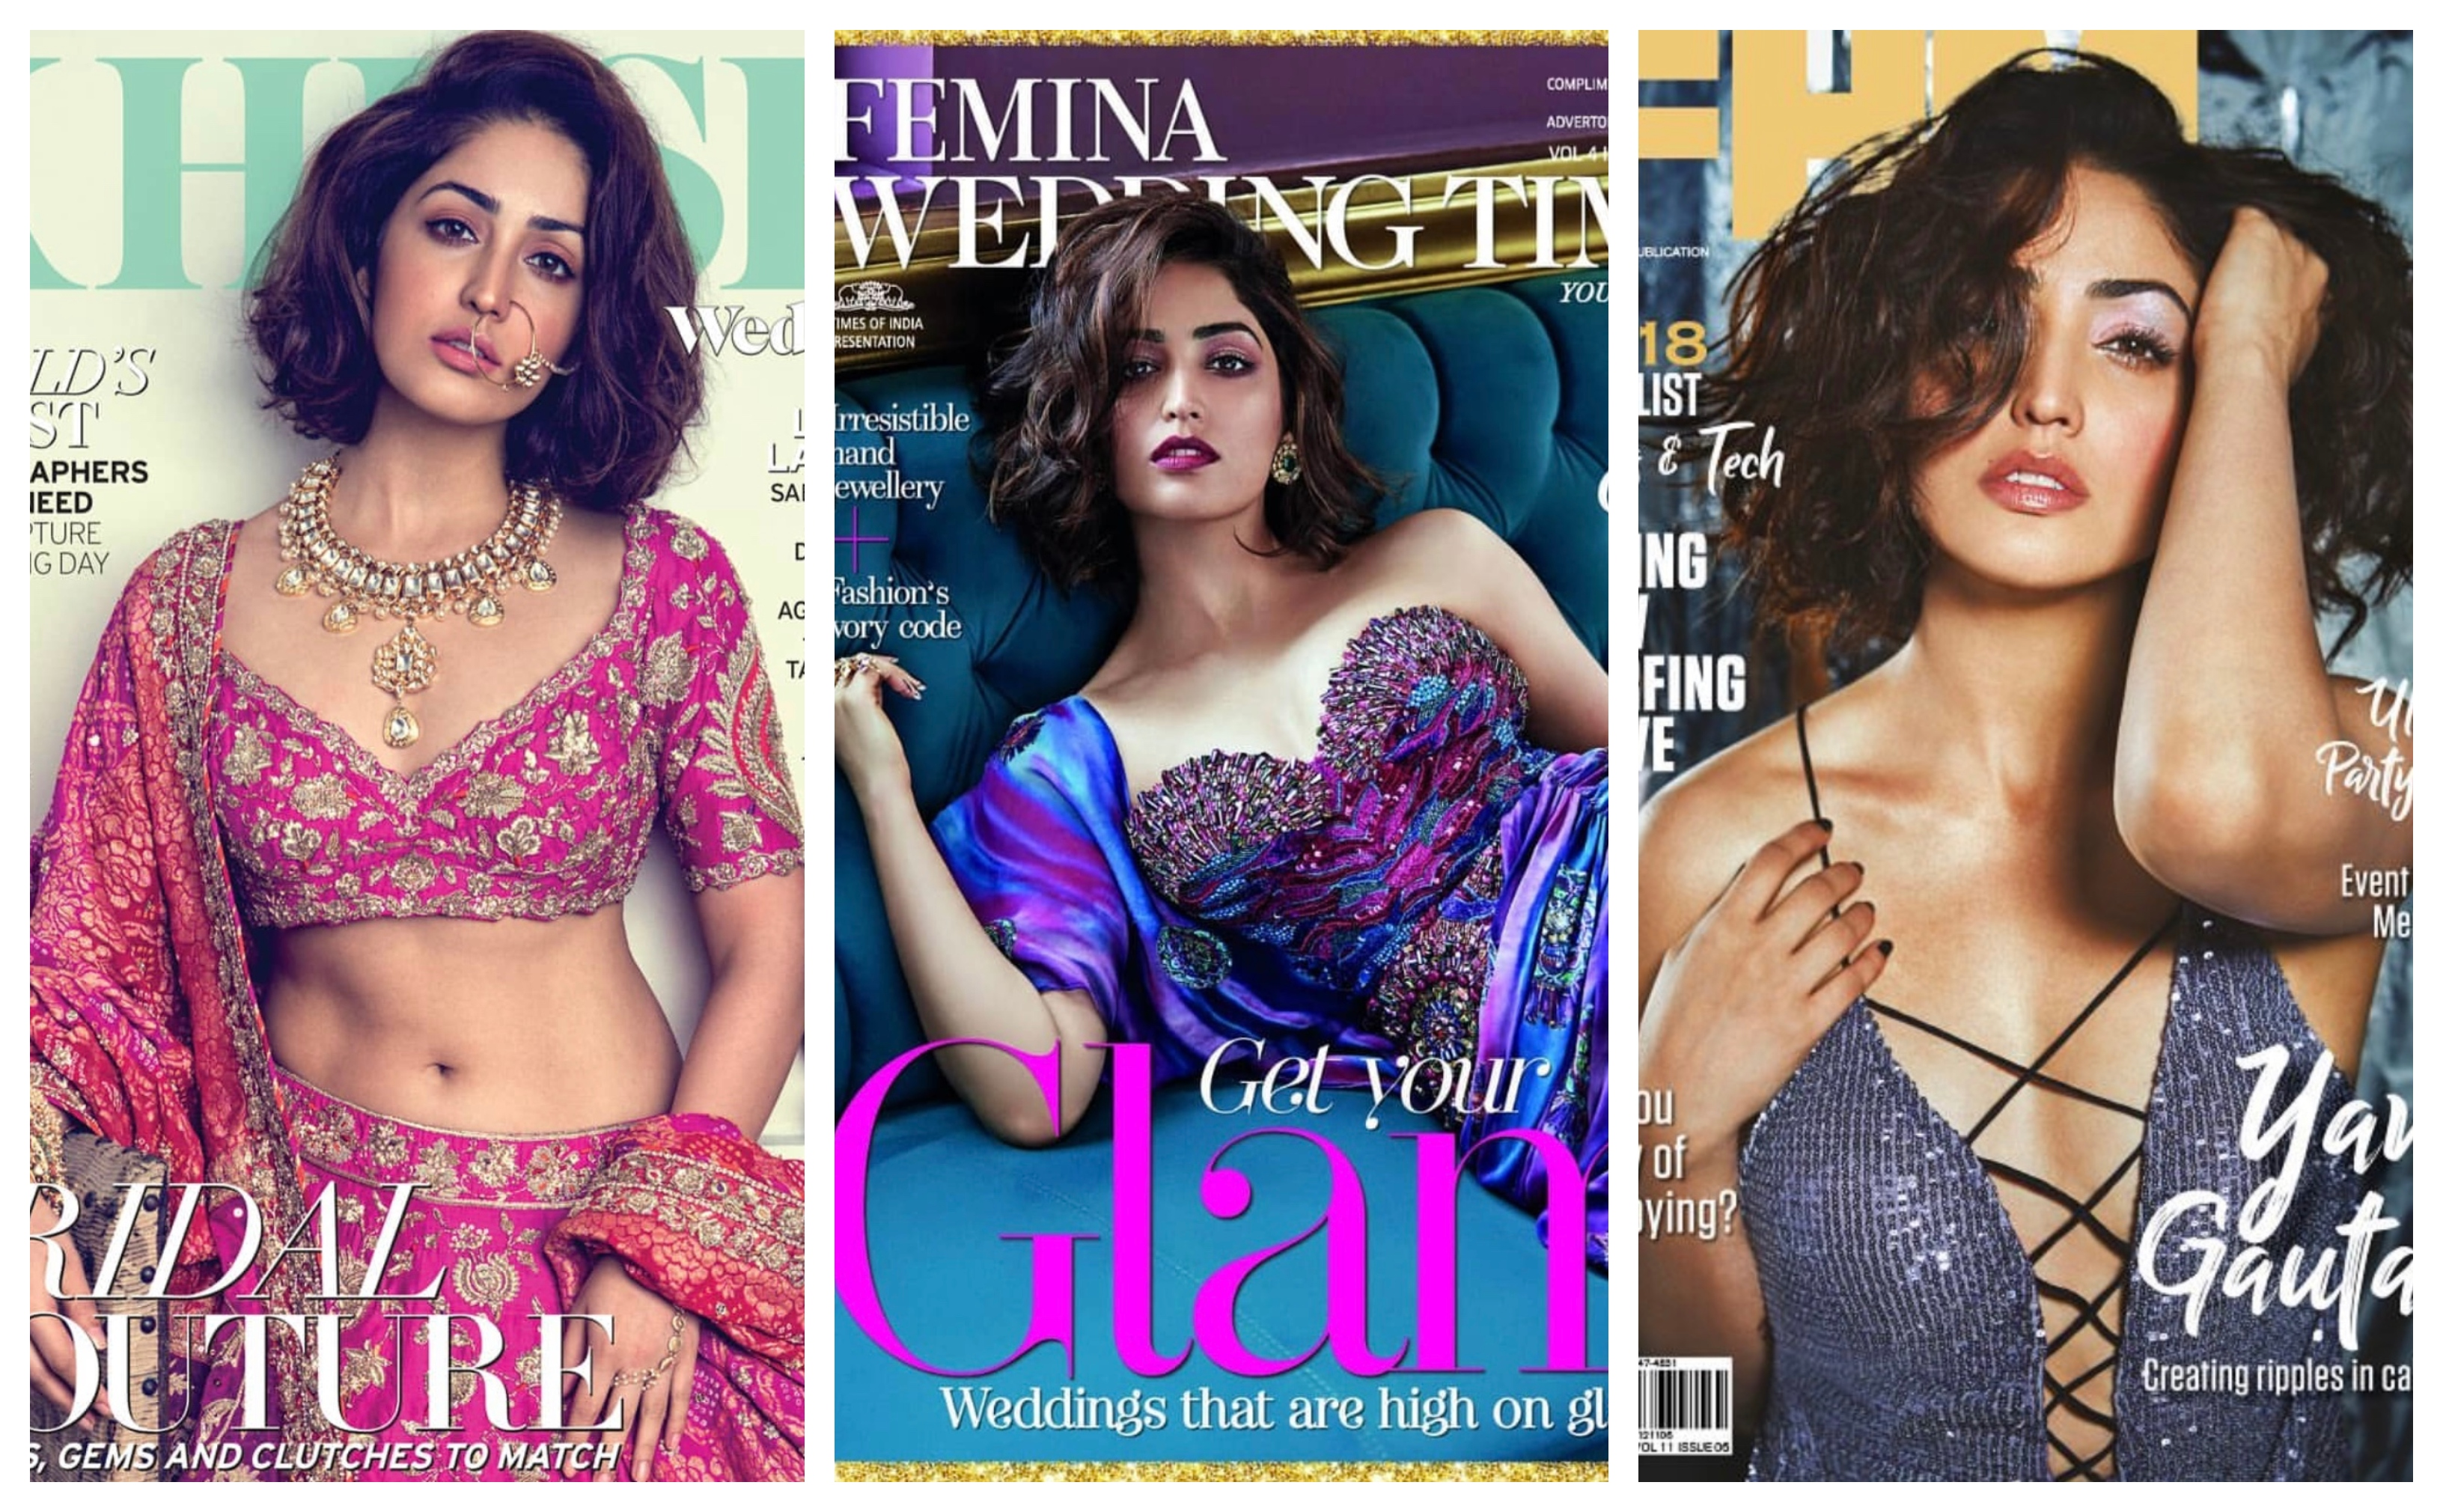 Check out Yami Gautam, FHM